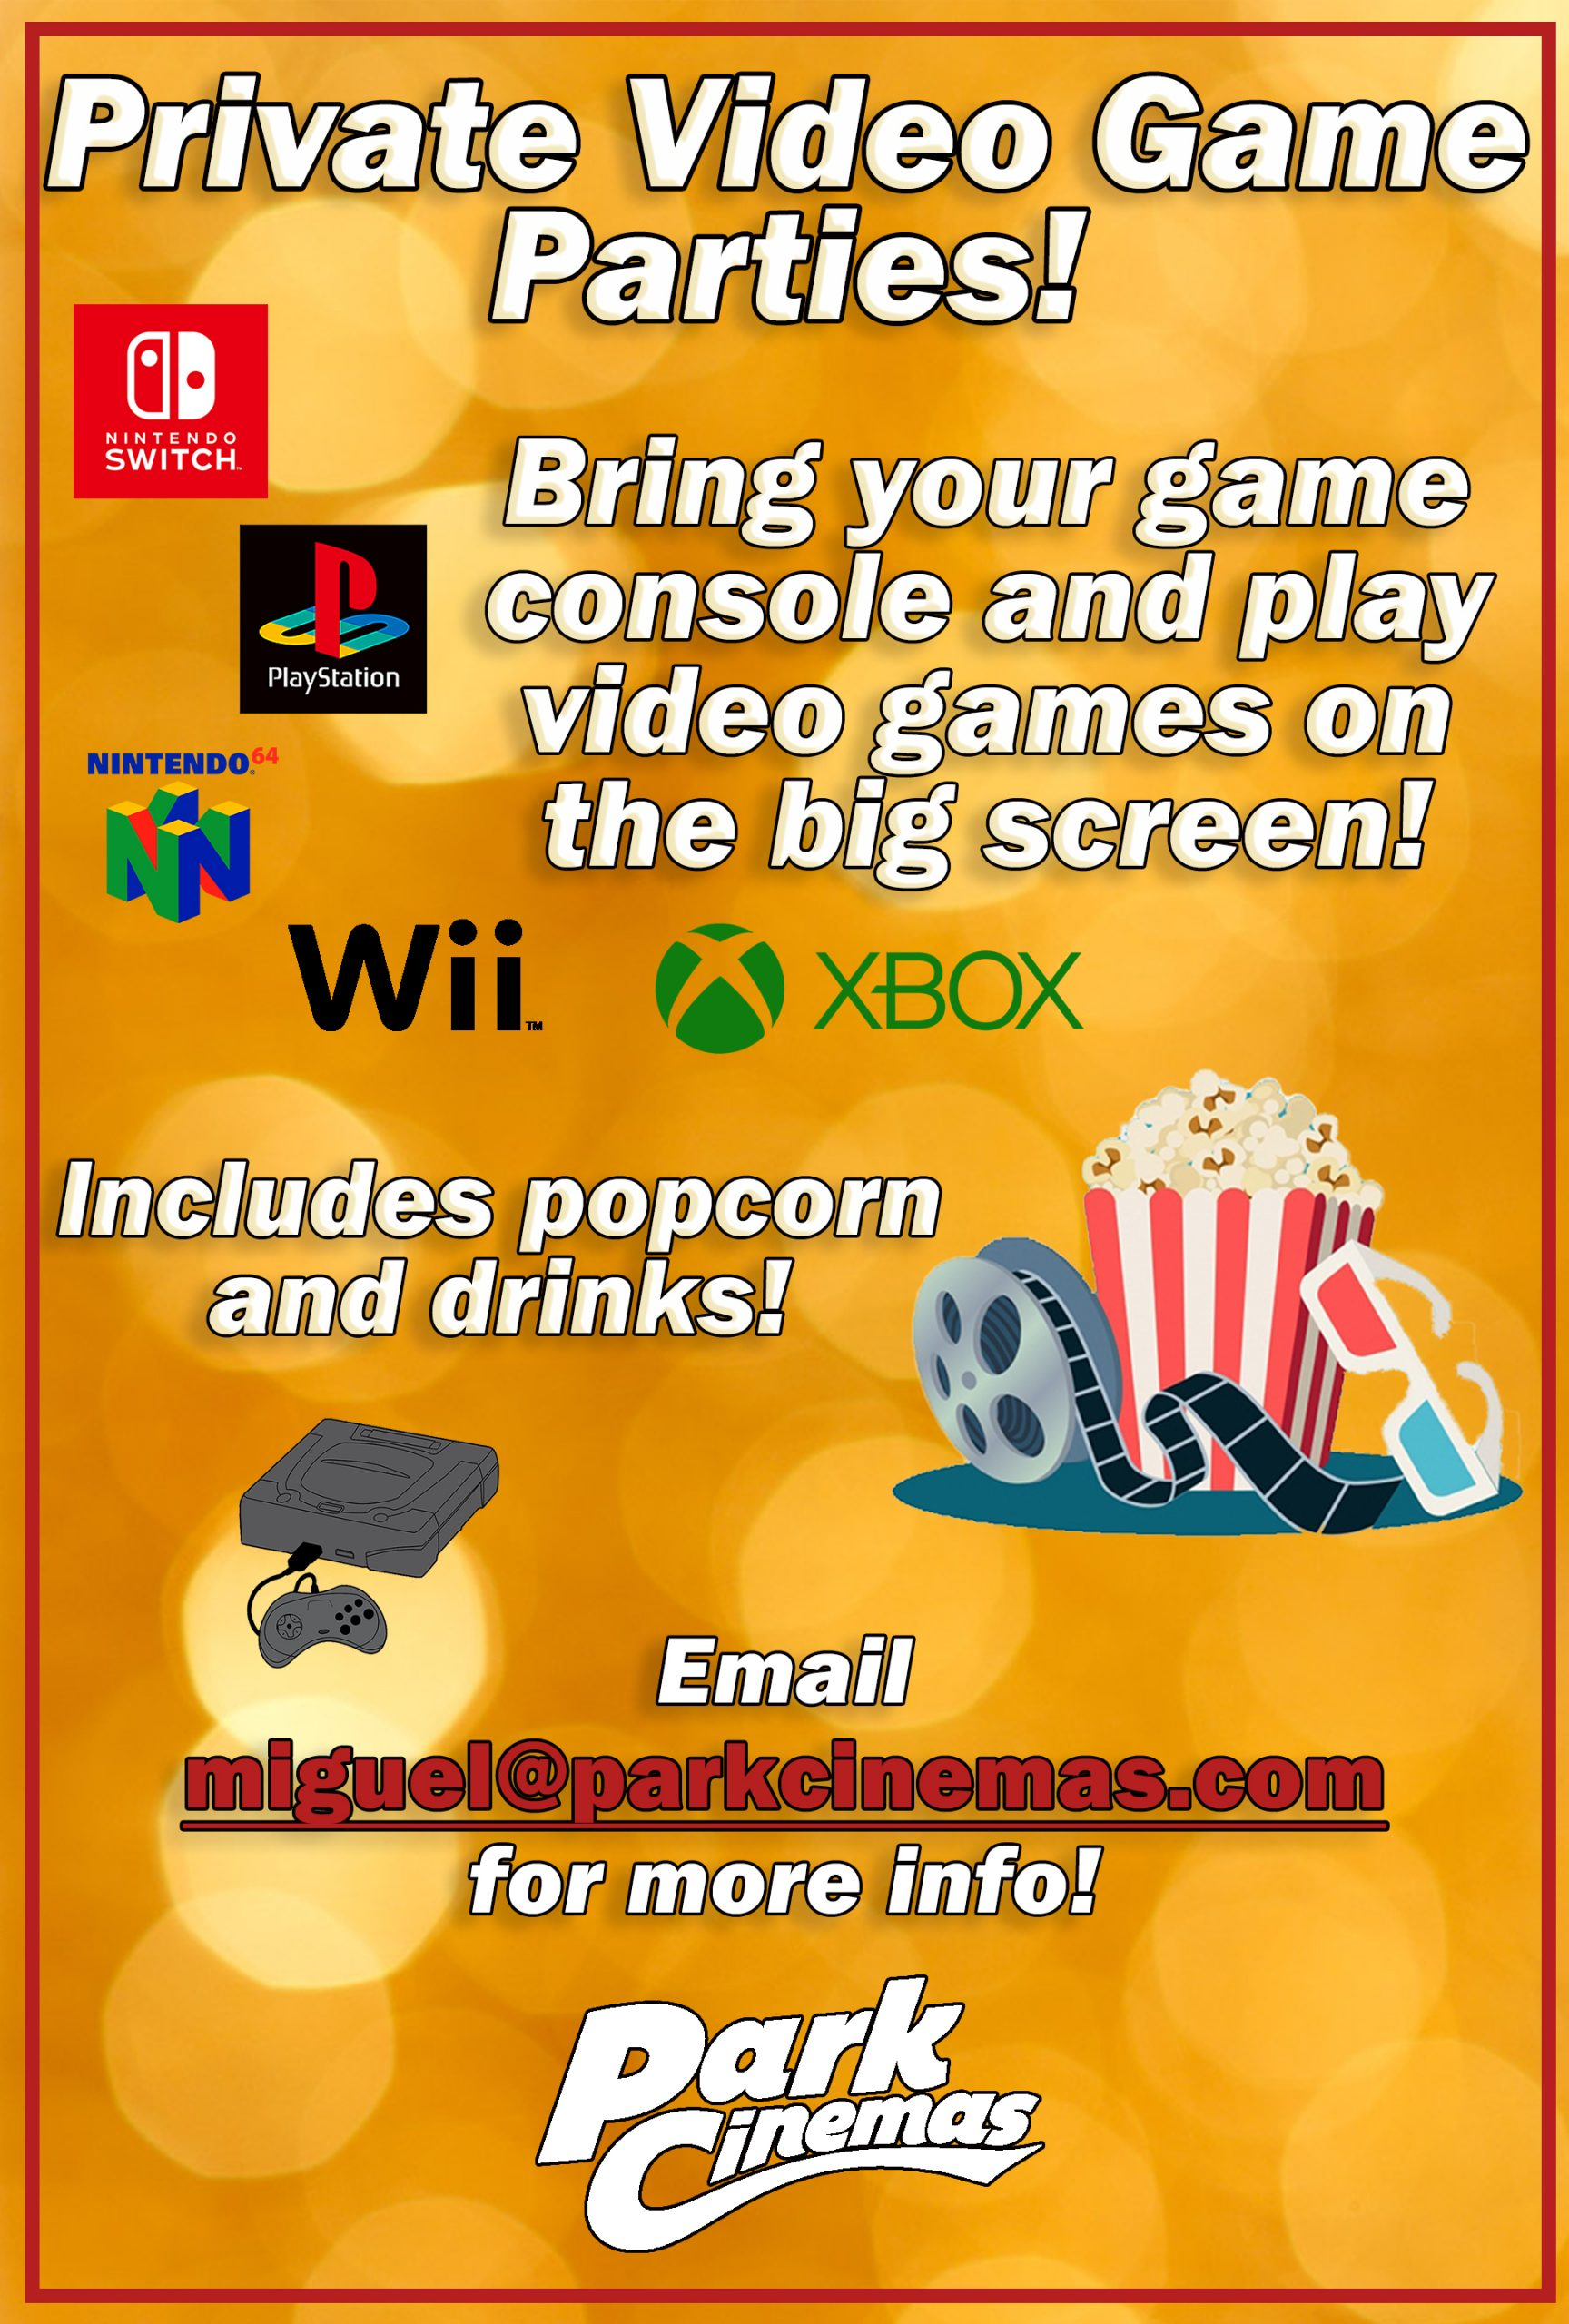 PrivateVideoGaming_Poster12032020